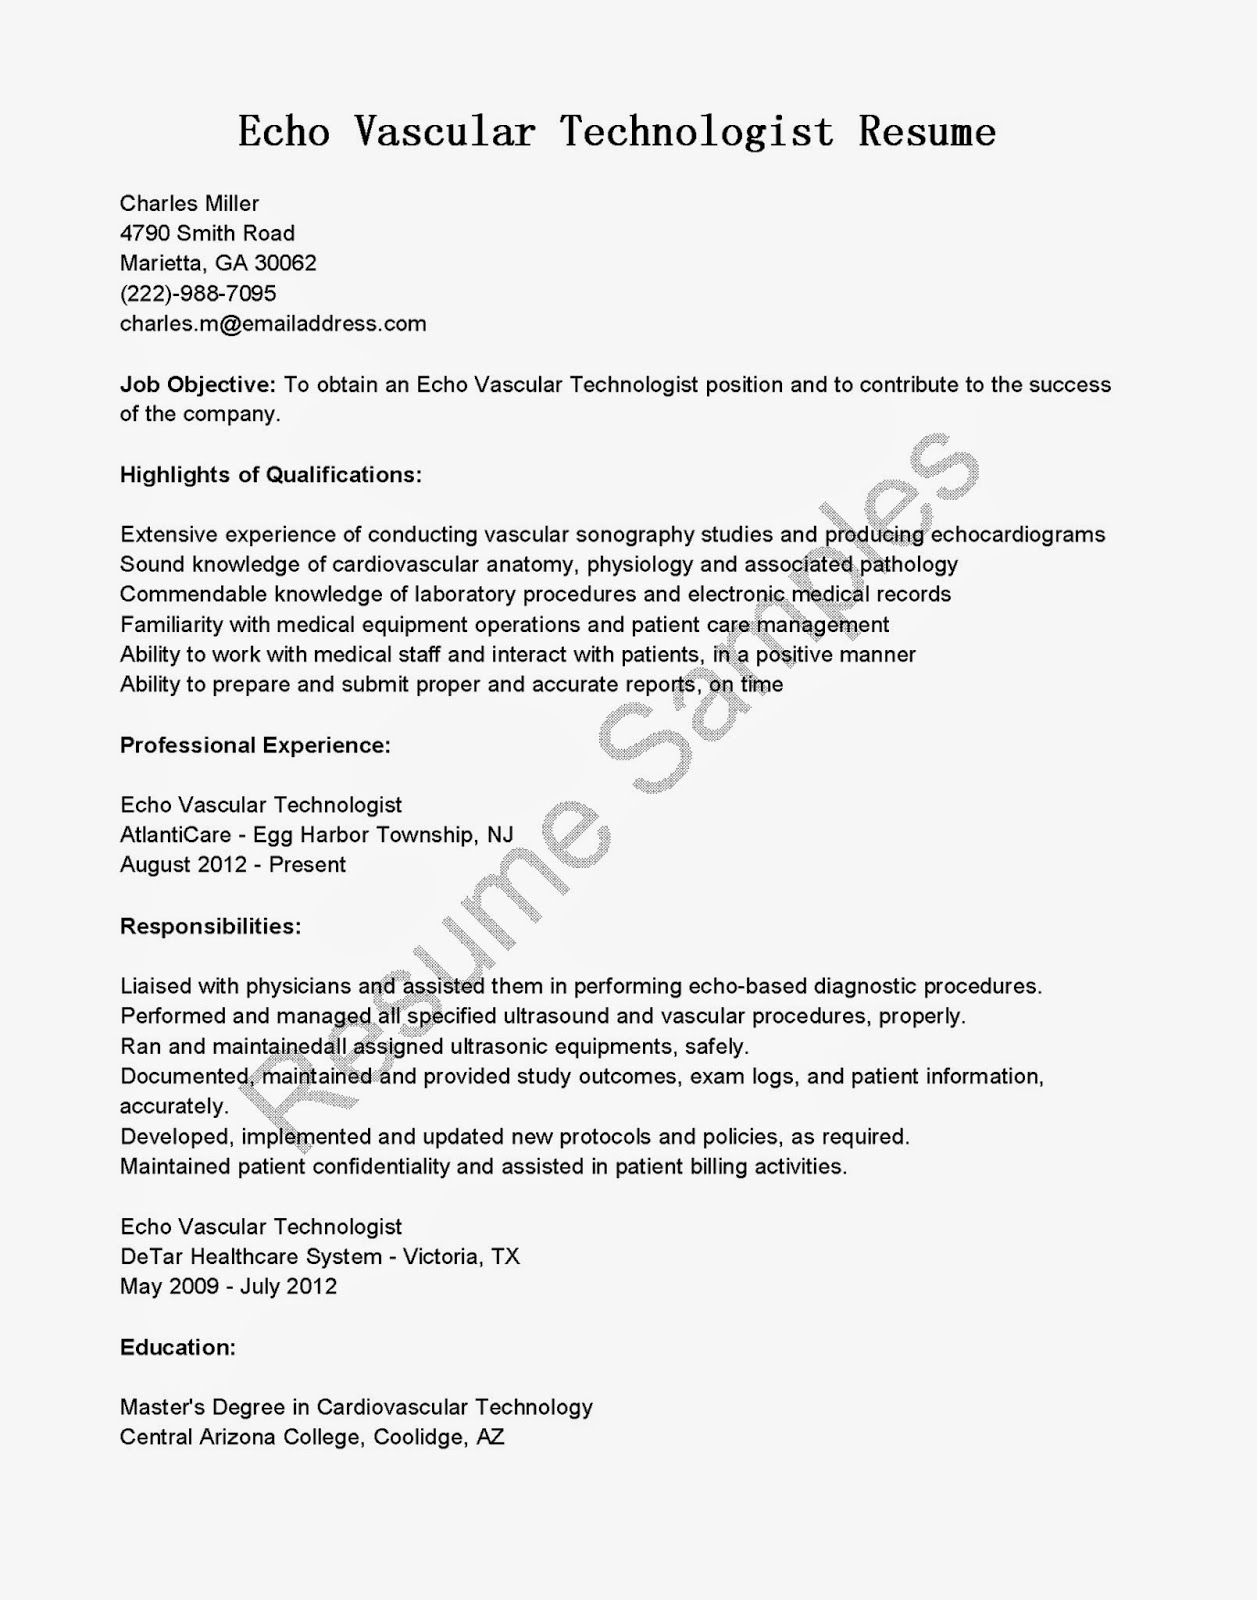 resume samples  echo vascular technologist resume sample